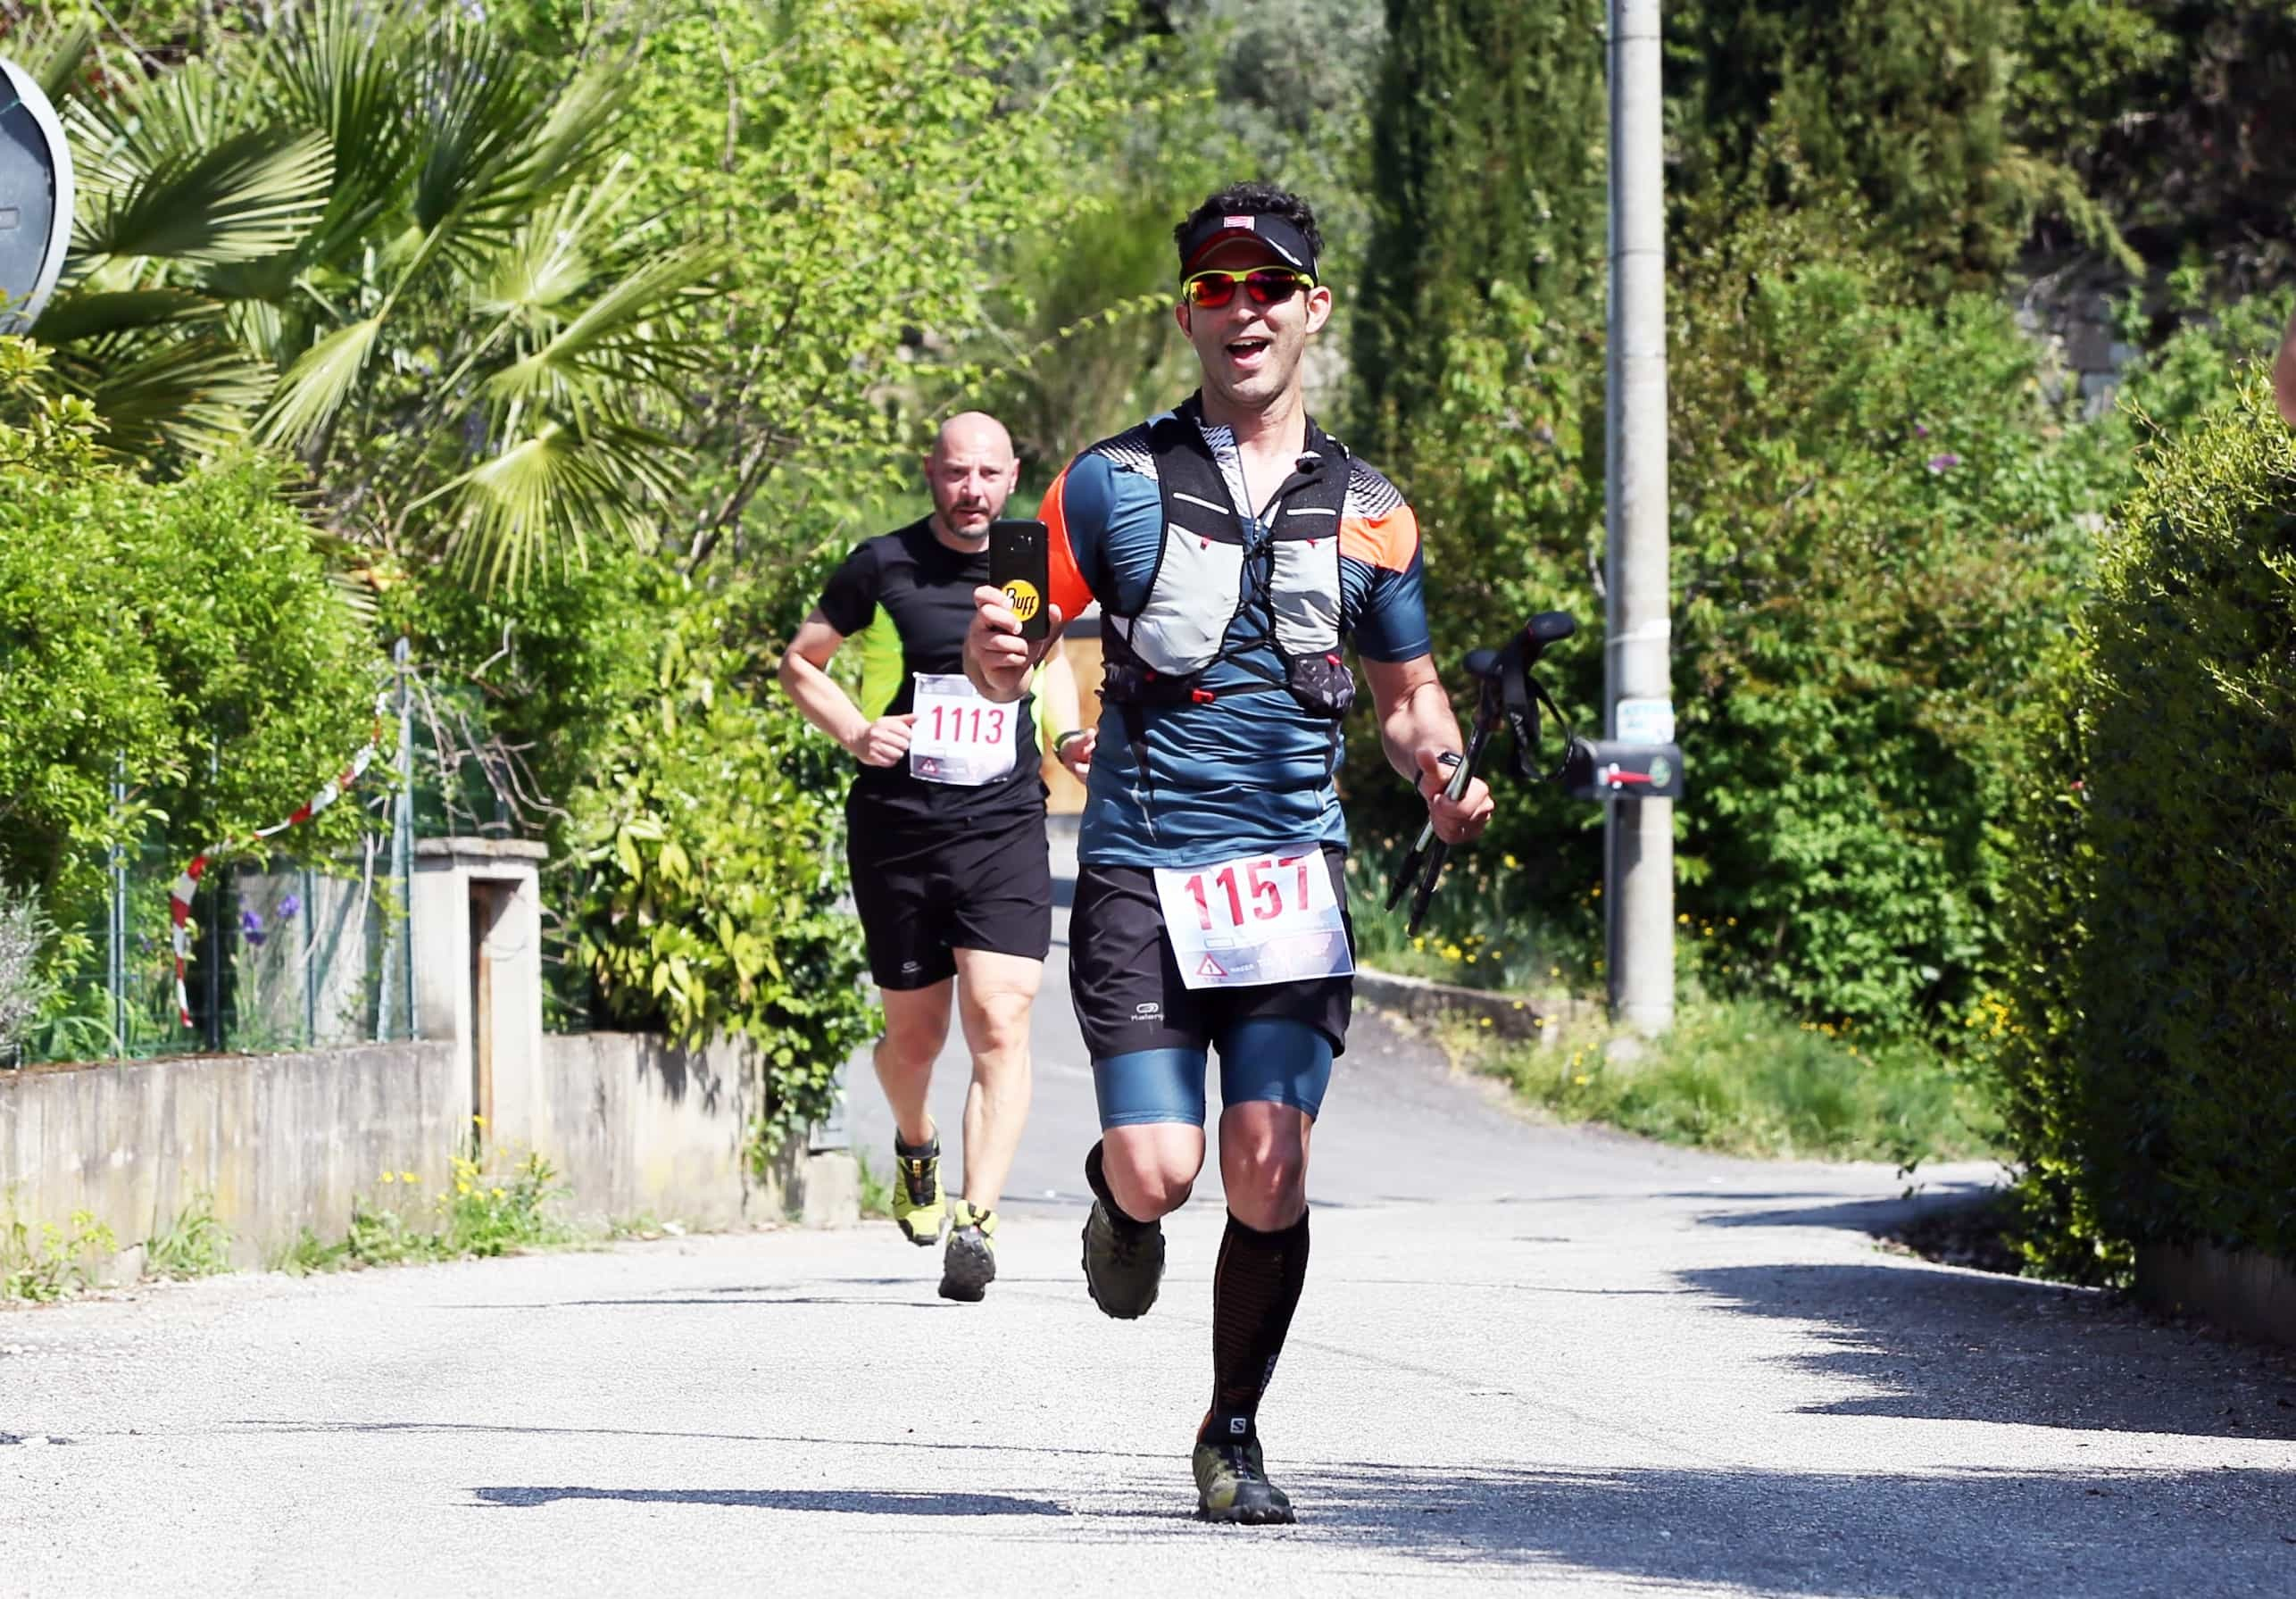 Runnerpercaso Finisher TCE 2017